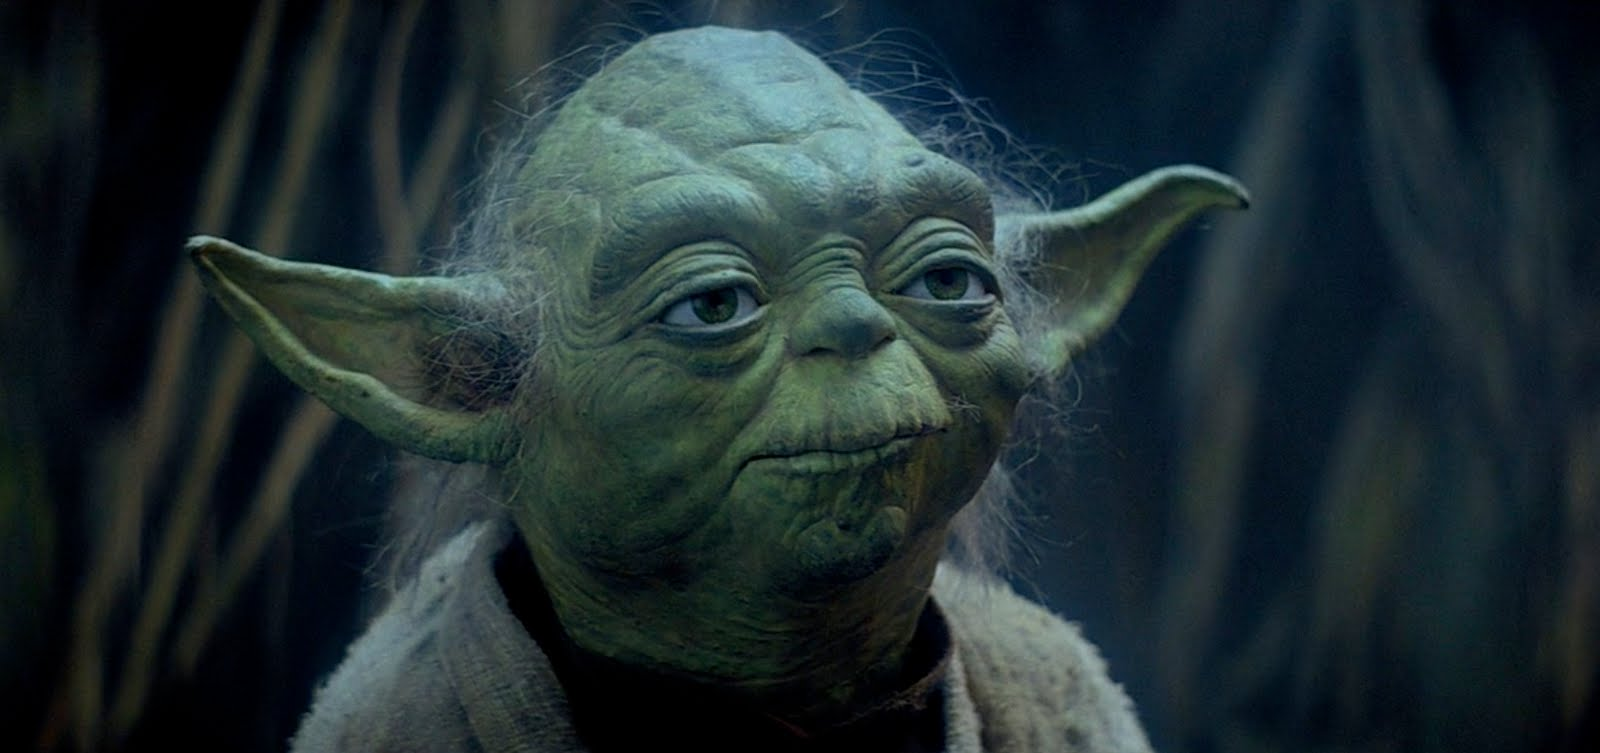 O primeiro nome de Yoda no filme era Buffy